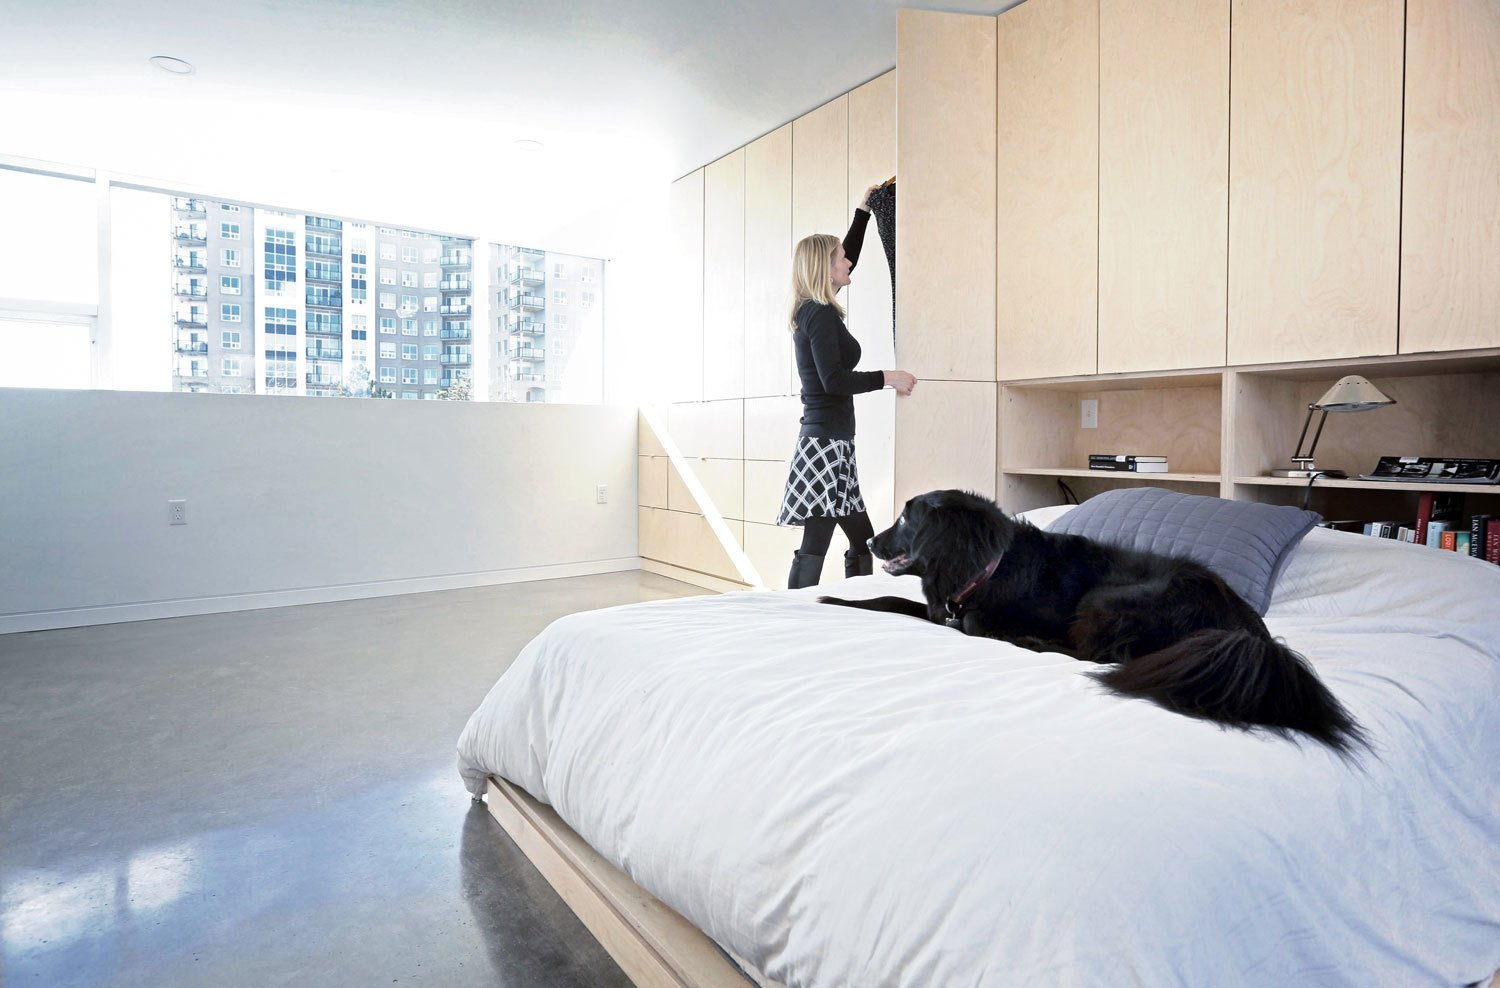 Concrete was chosen for both structural and finish material throughout much of the home, for its aesthetic, functional, and budgetary appeal. The polished concrete floors in the bedroom complement the birch bed and cabinetry. The home provides living space for the couple, two kids, one dog, and two cats.